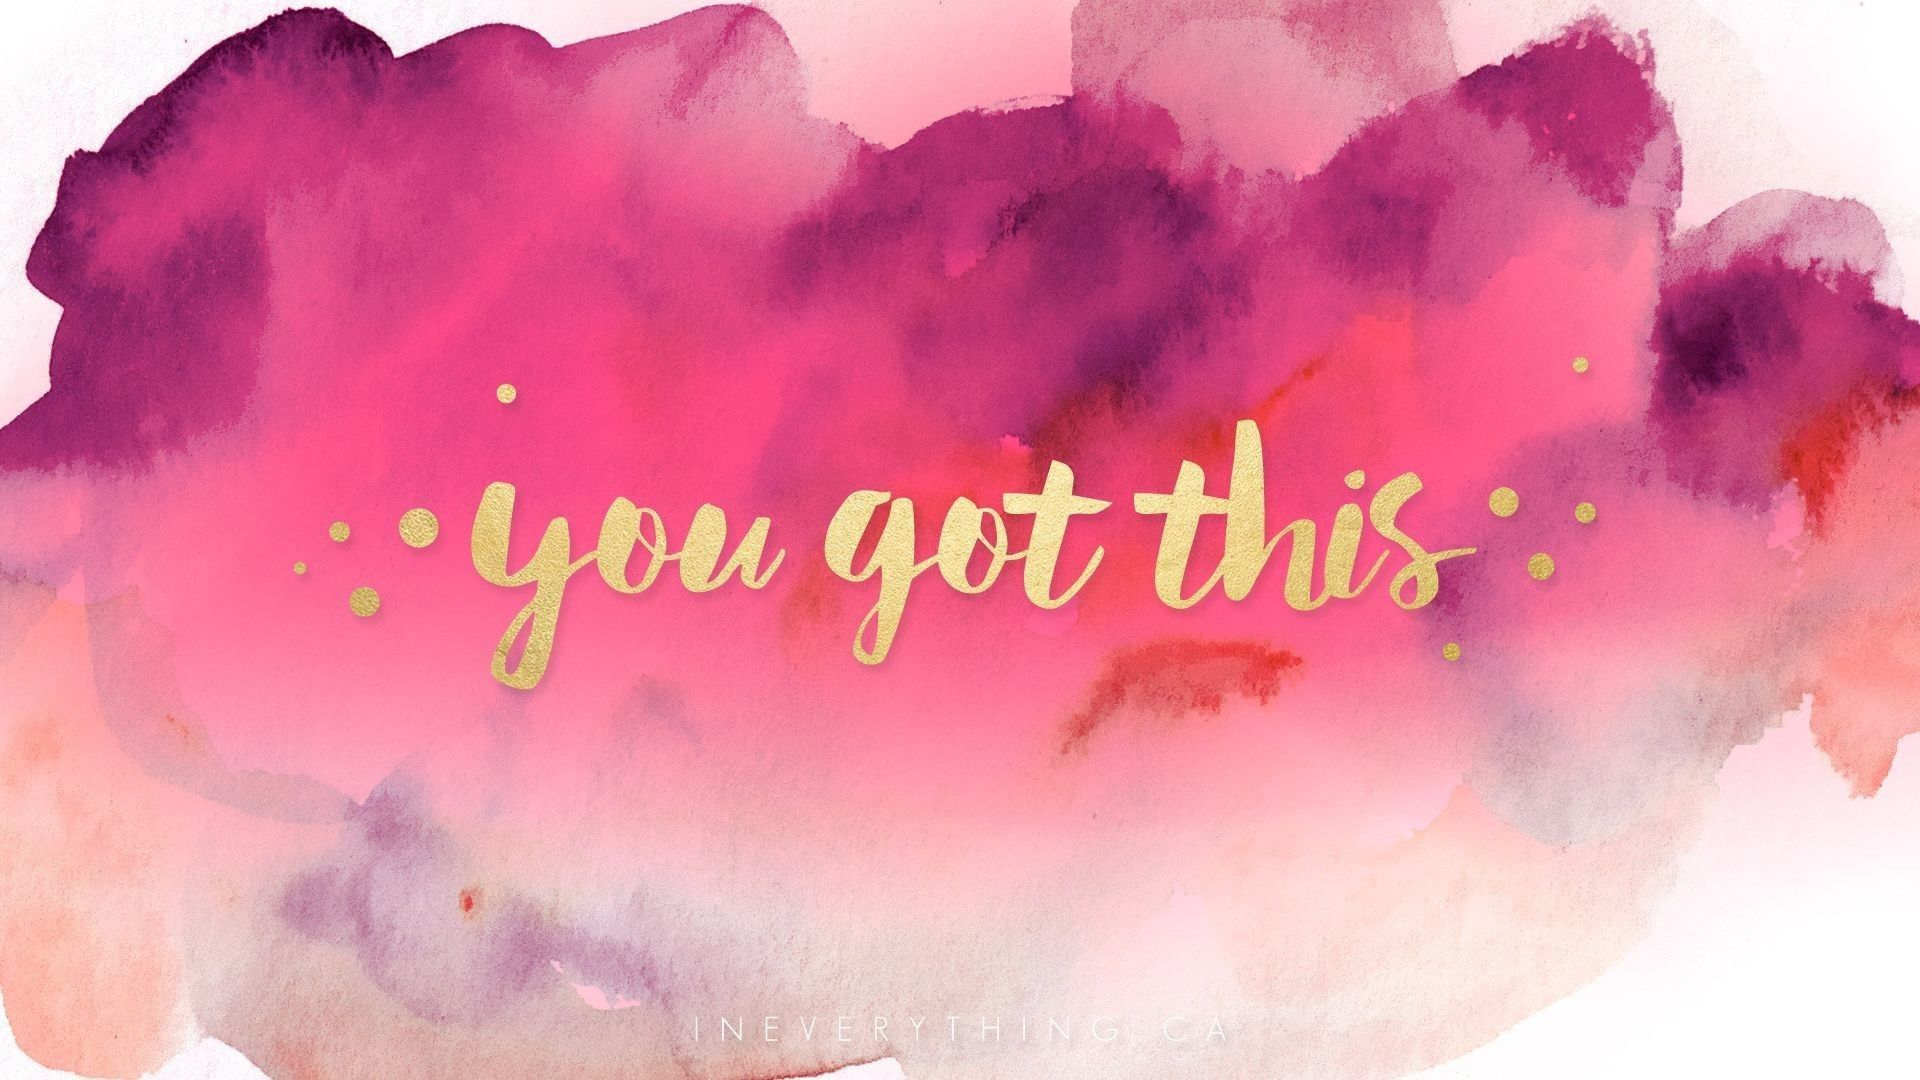 1920x1080 2048x2048 Girly Quotes About Life Tumblr Free Girly Quotes Wallpaper Hd Desktop Wallpaper Art Cute Wallpapers For Computer Macbook Wallpaper